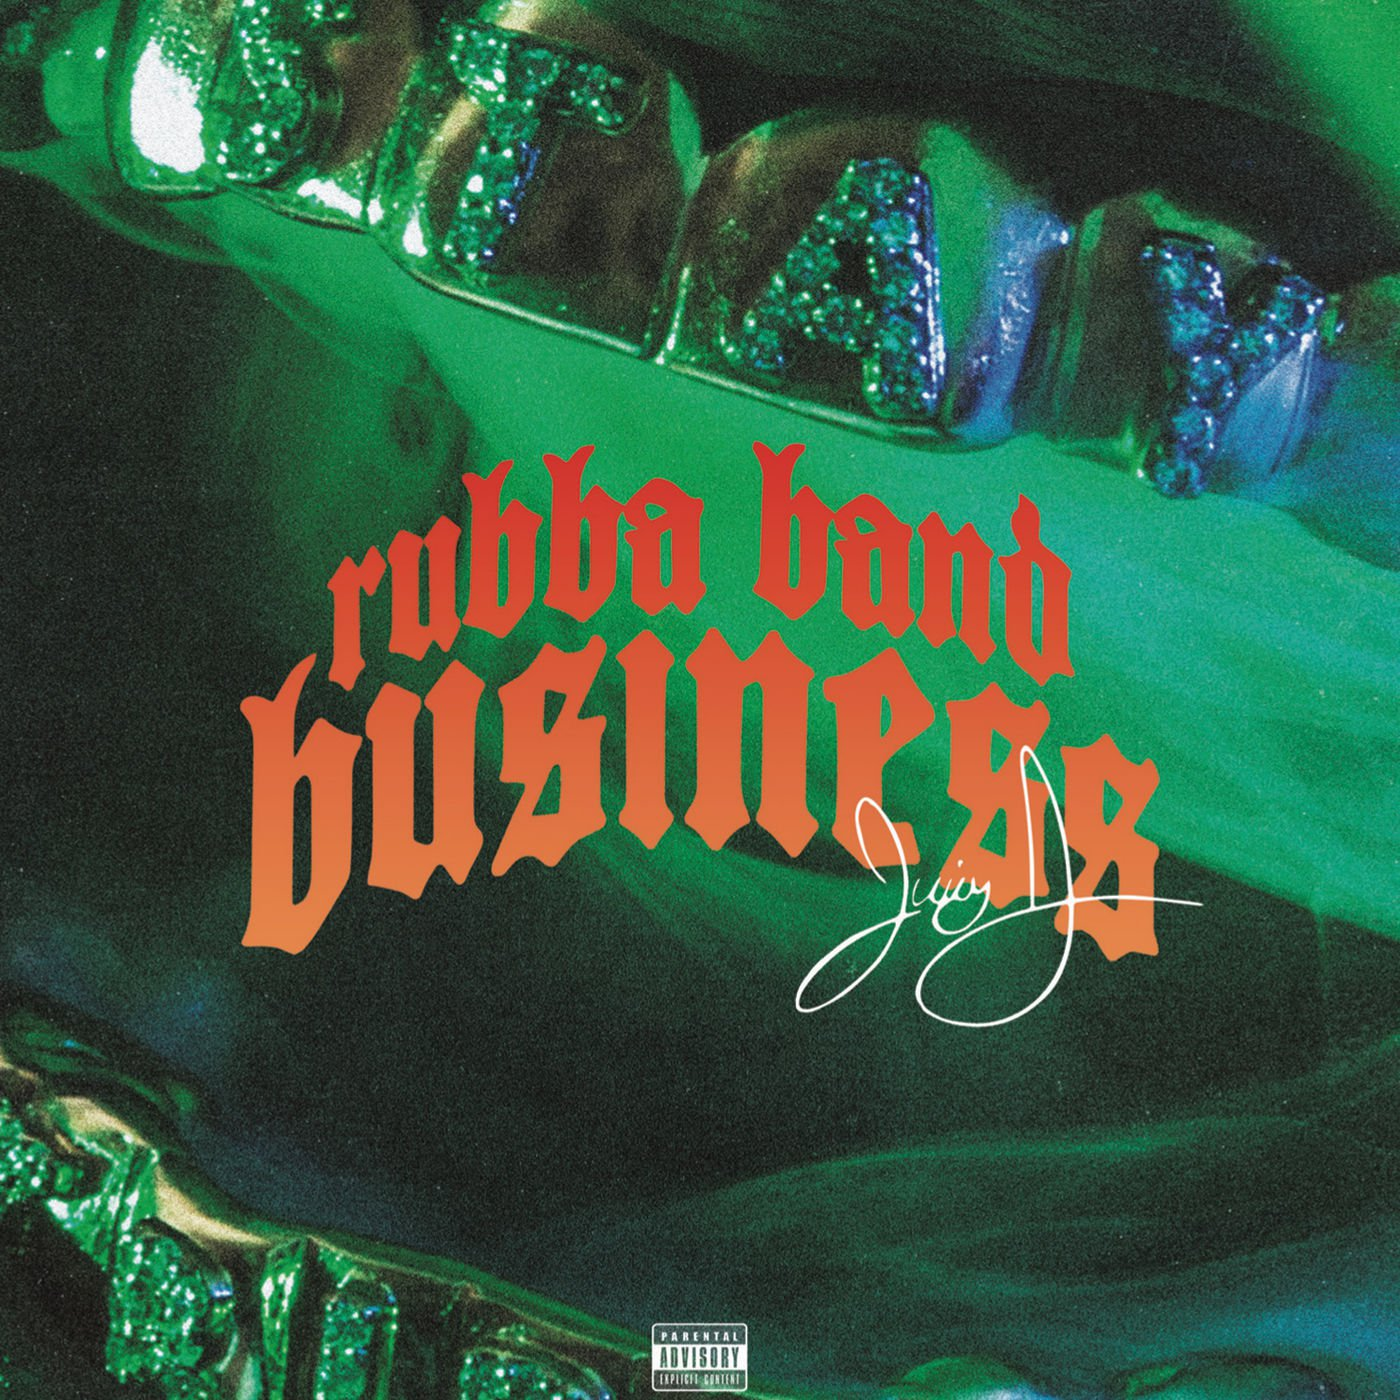 Juicy J – Rubba Band Business [Album Stream]